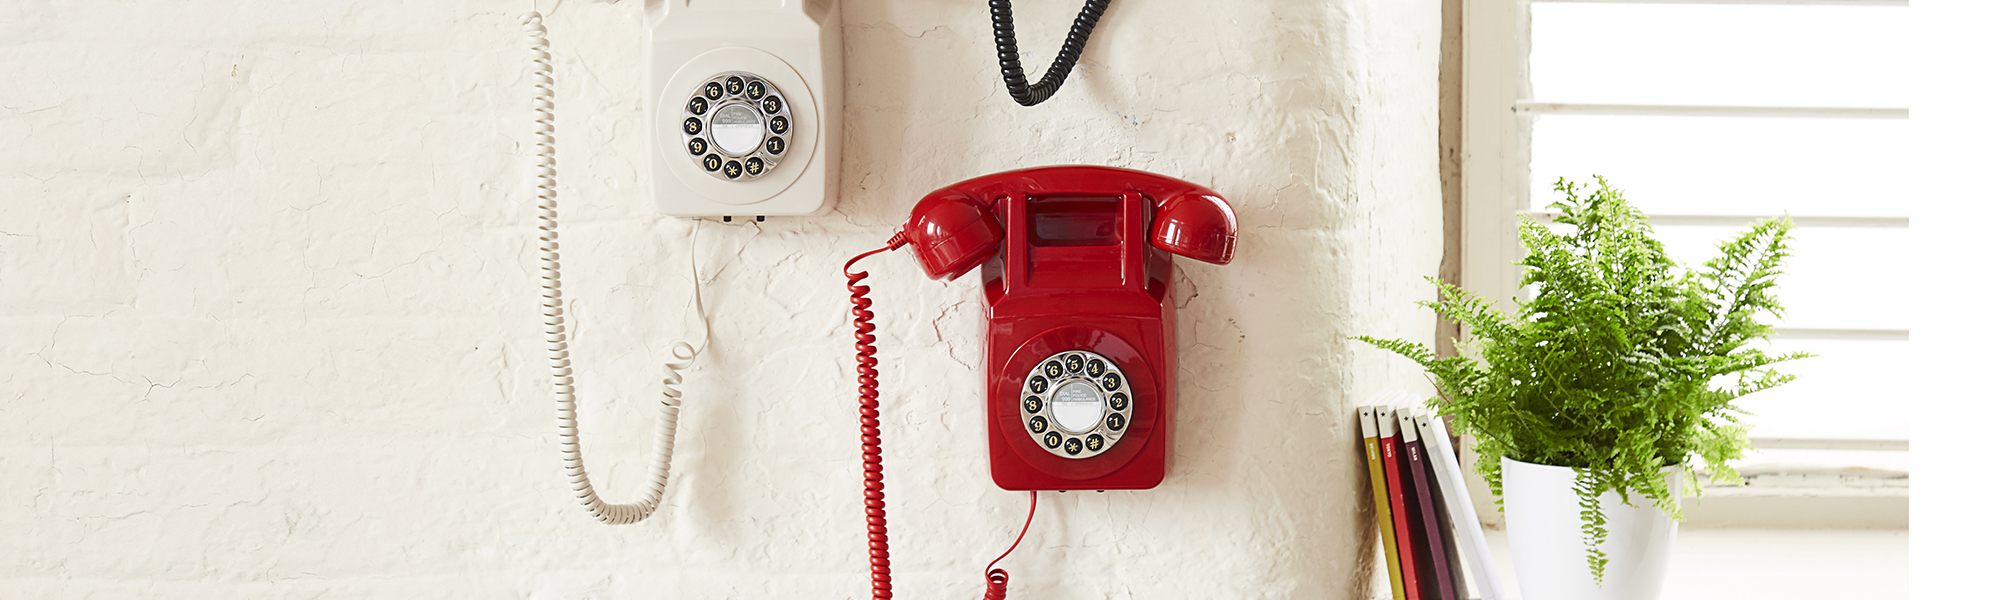 Retro Wall Phones | Old Fashioned Wall Phones | Old Wall Telephone